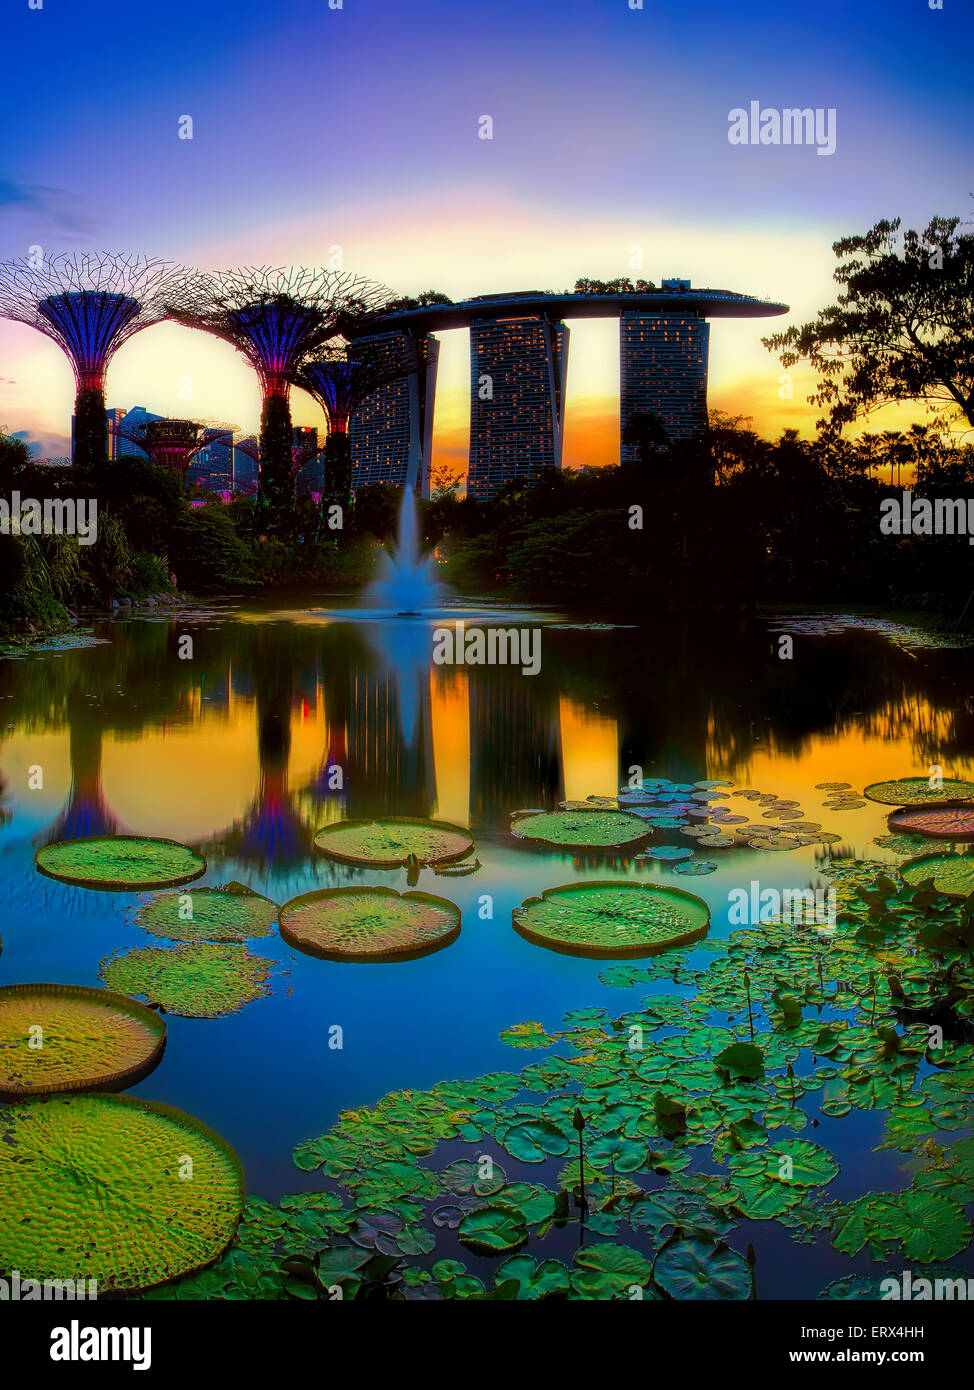 SINGAPORE-JUN 07: vista serale del laghetto di ninfee, e Marina Bay Sands a Giardini in baia su giu 07, 2015 a Singapore. Immagini Stock